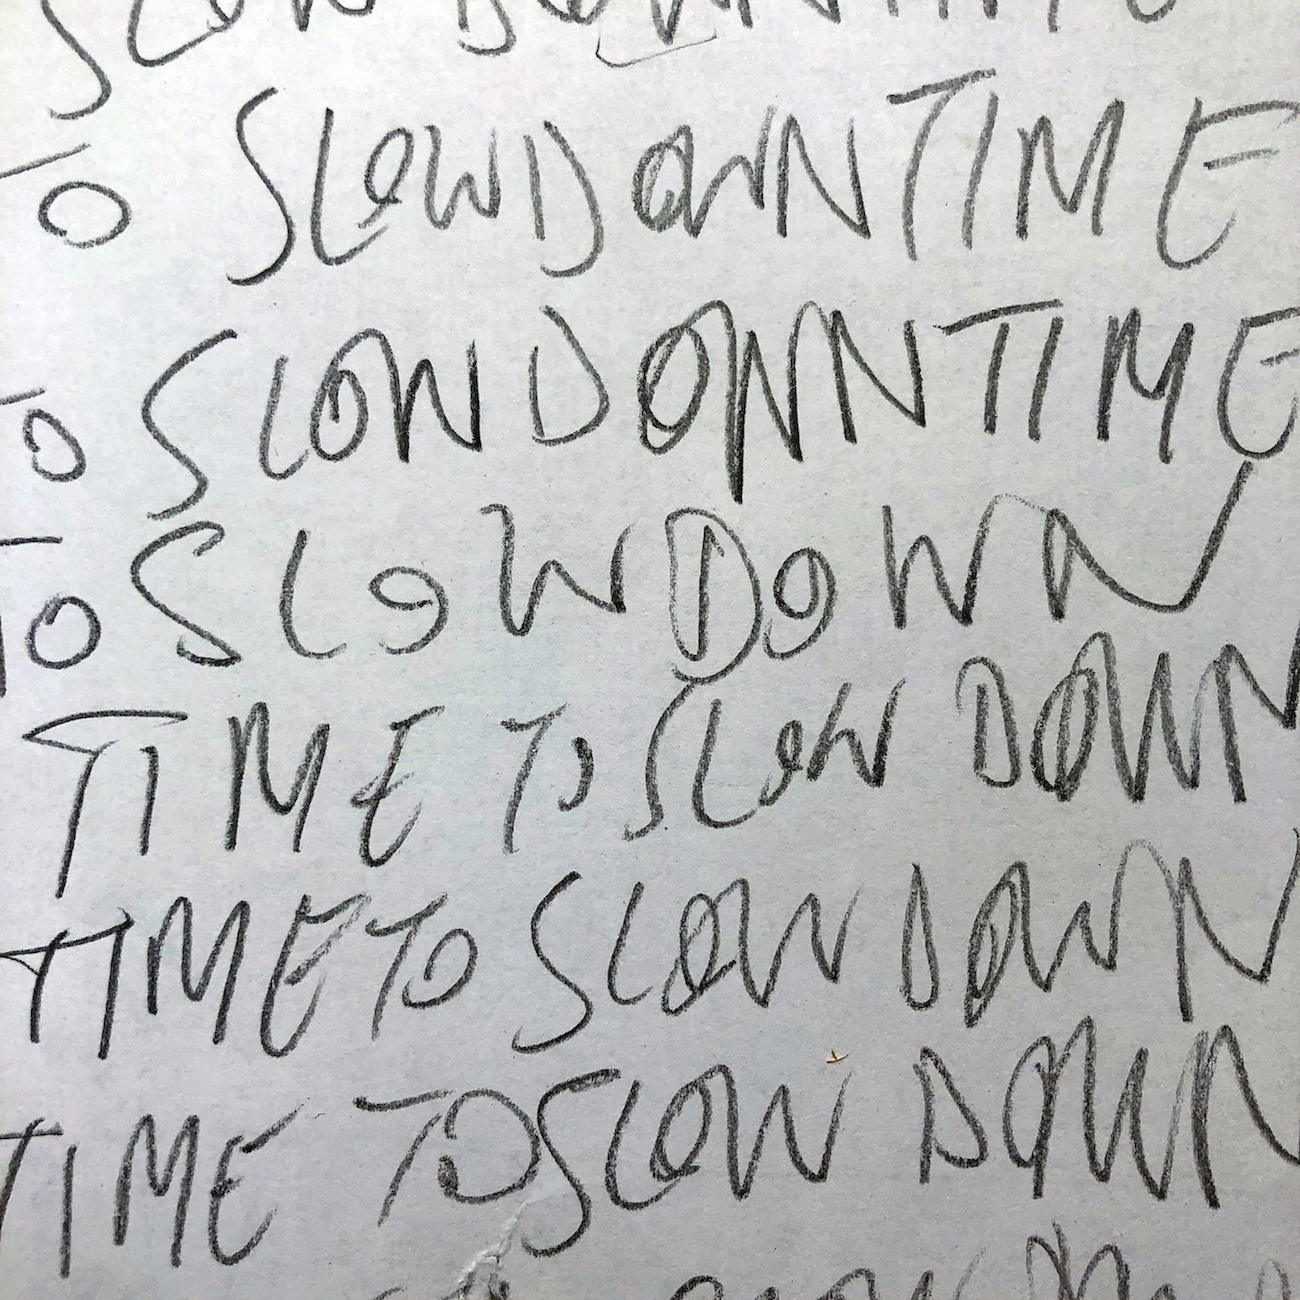 Tim Etchells, To Slow Down Time To Slow Down (audio graphic), 2020. Audio, stereo. 00:04:07.